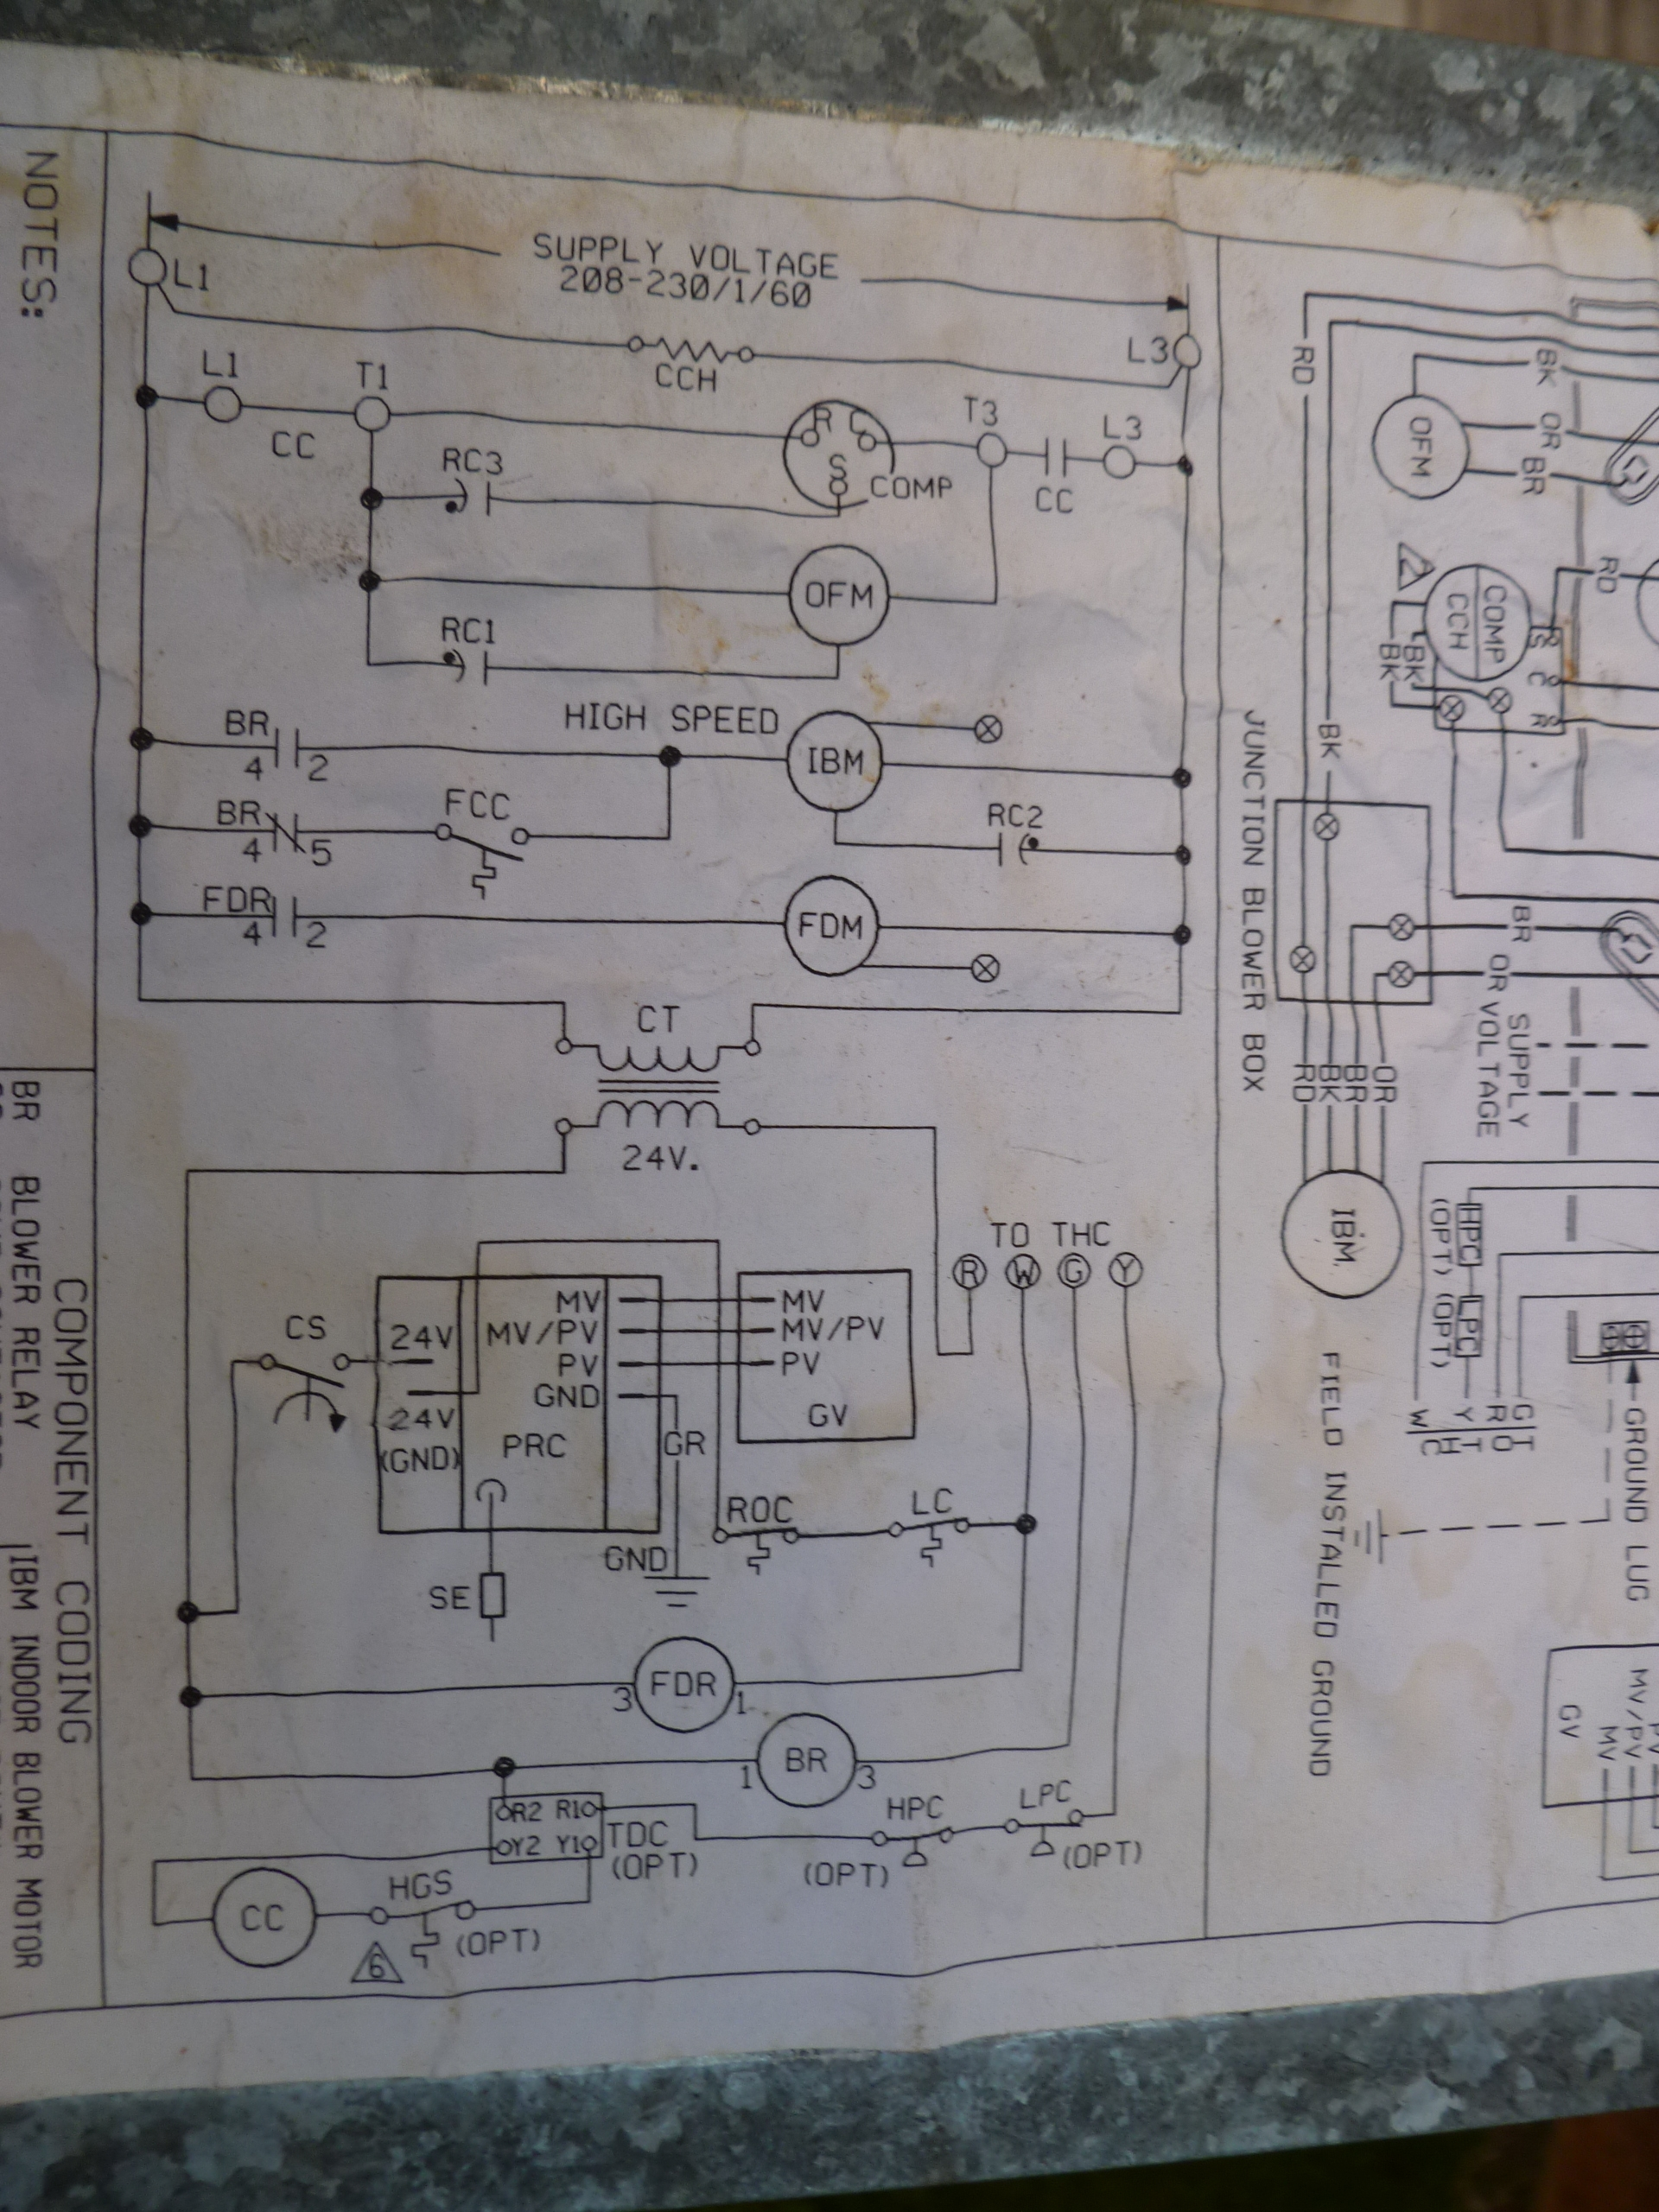 Rheem Heater Wiring Diagram Electrical Diagrams Hvac Rrgg Block And Schematic U2022 Thermostat 8 Wires